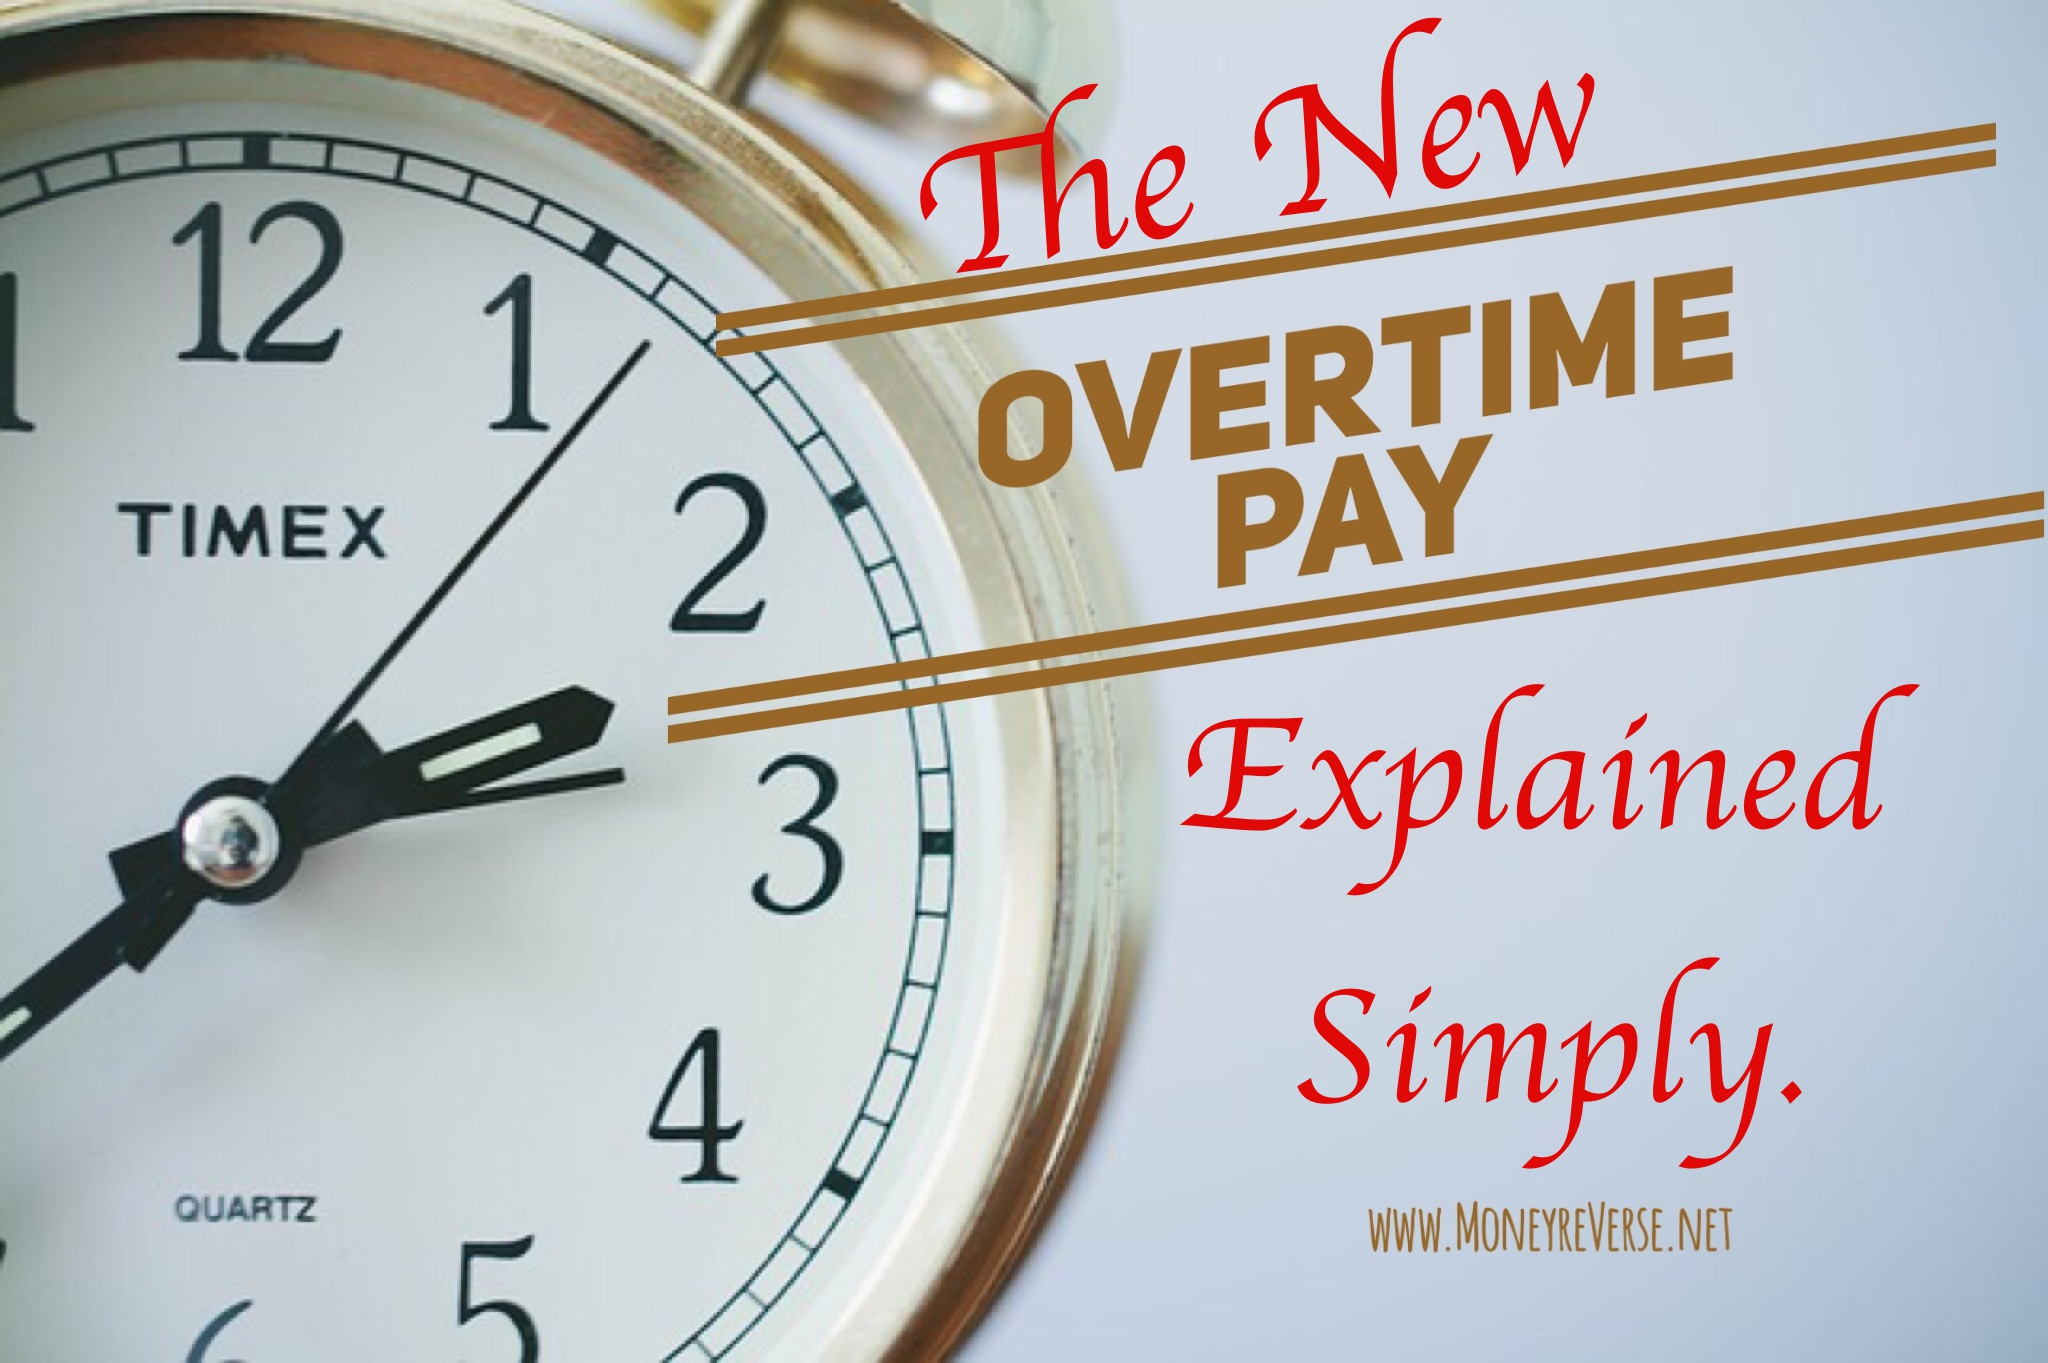 Money reVerse Overtime Pay Explained Simply